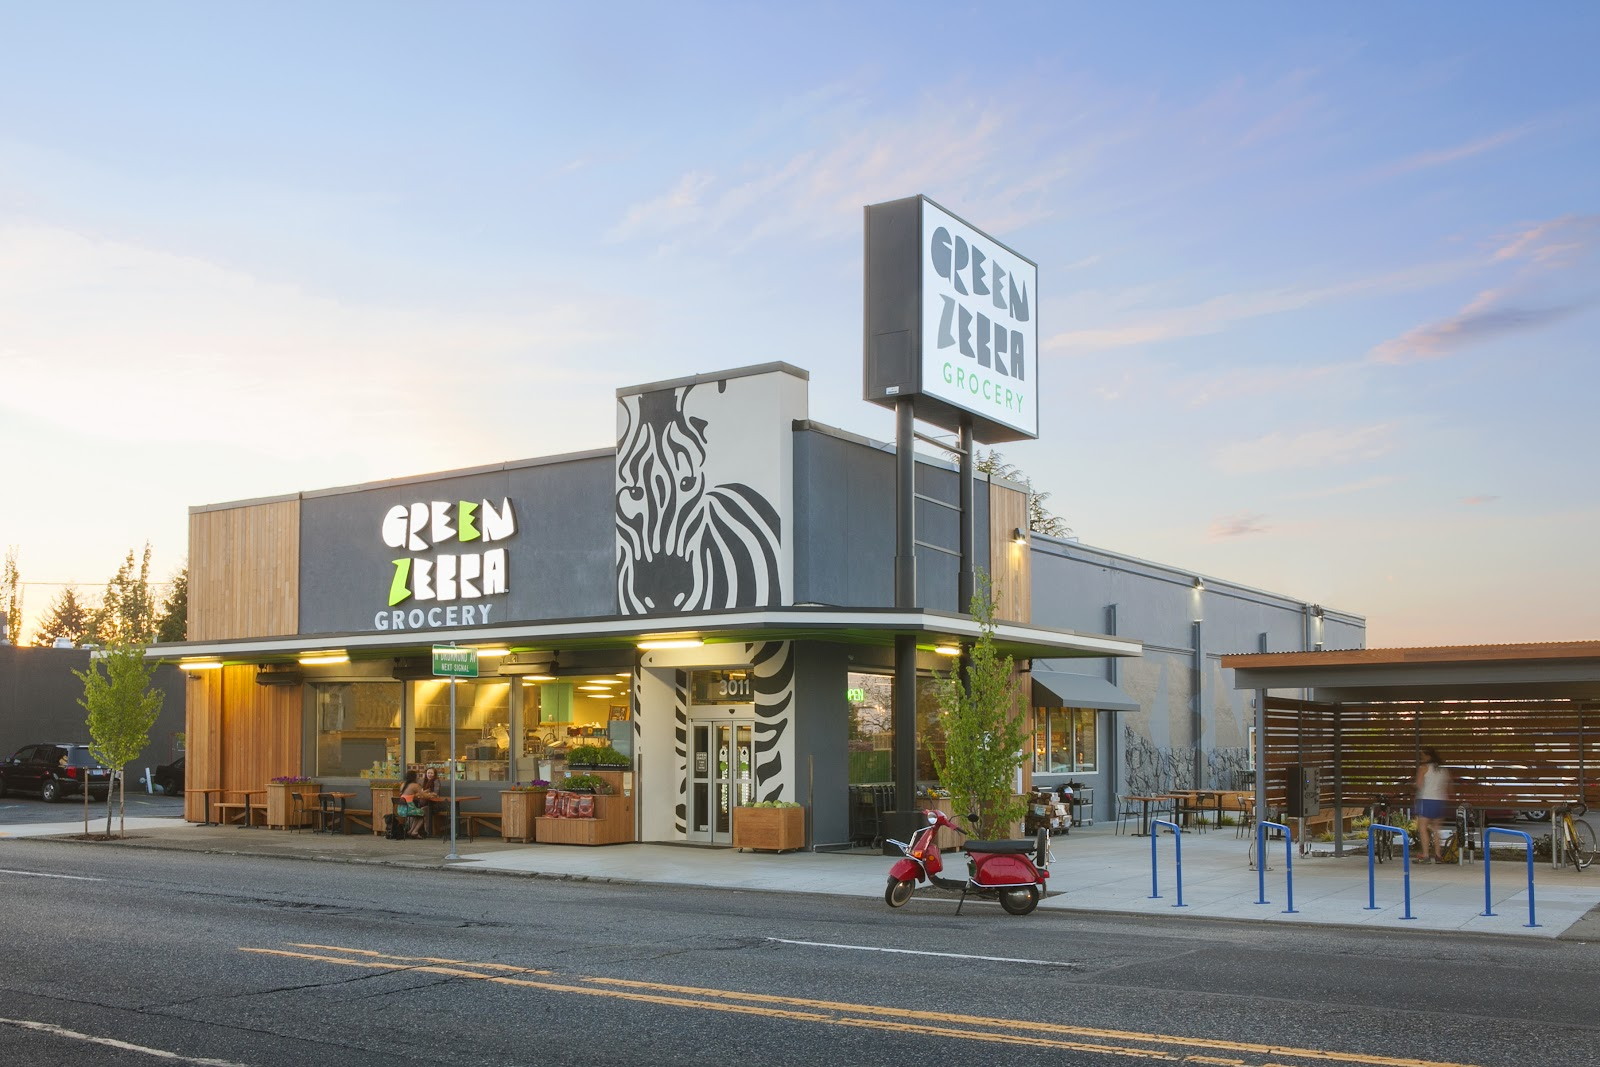 Green Zebra's store front.